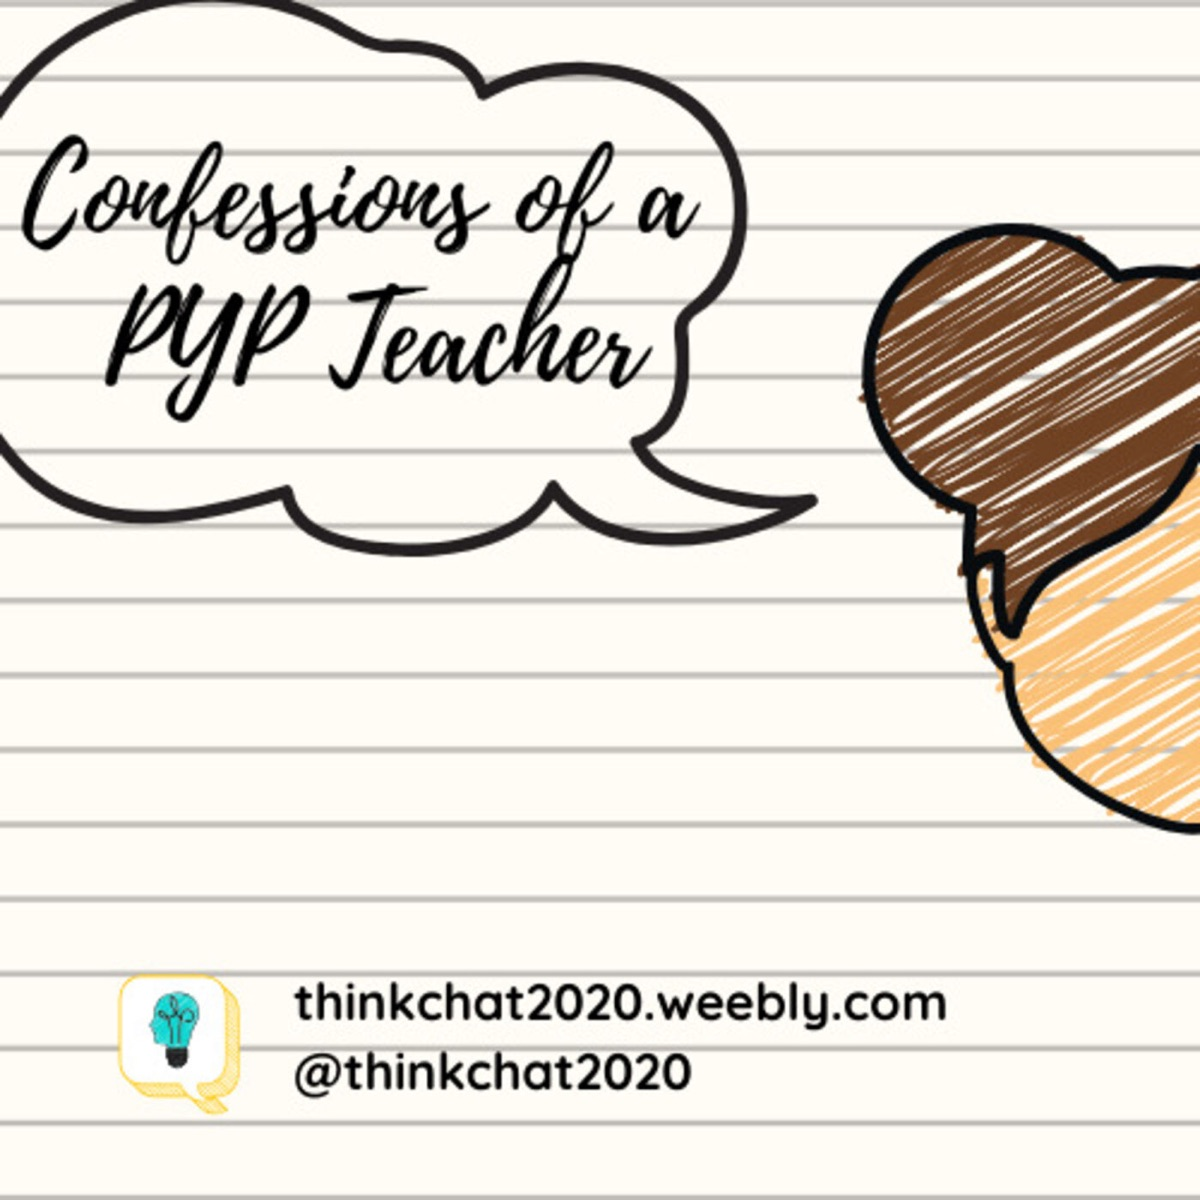 Confessions of a PYP Teacher